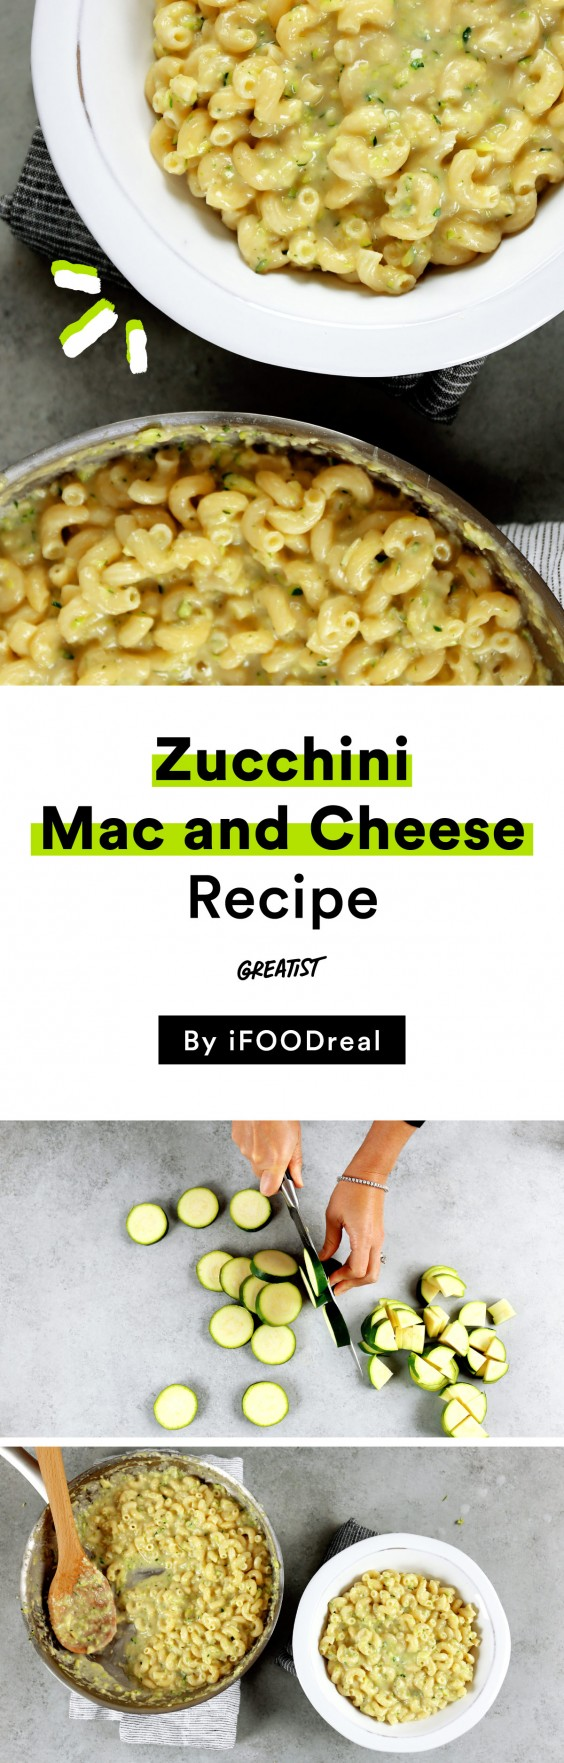 zucchini mac and cheese iFOODreal